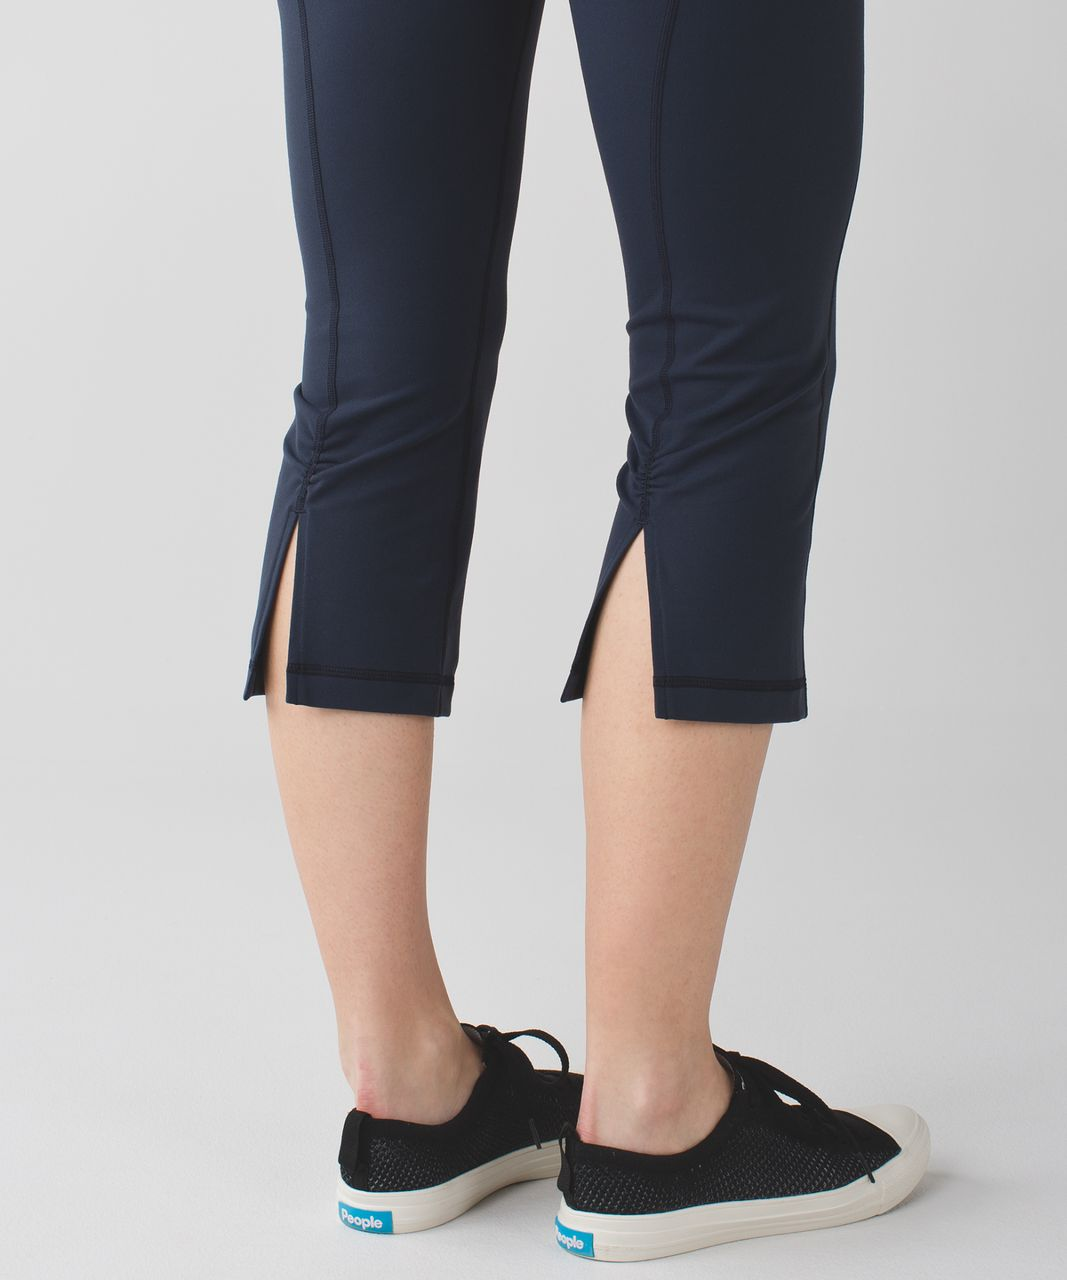 Lululemon Gather & Crow Crop II *Full-On Luon - Inkwell / Space Dye Twist Naval Blue Very Light Flare